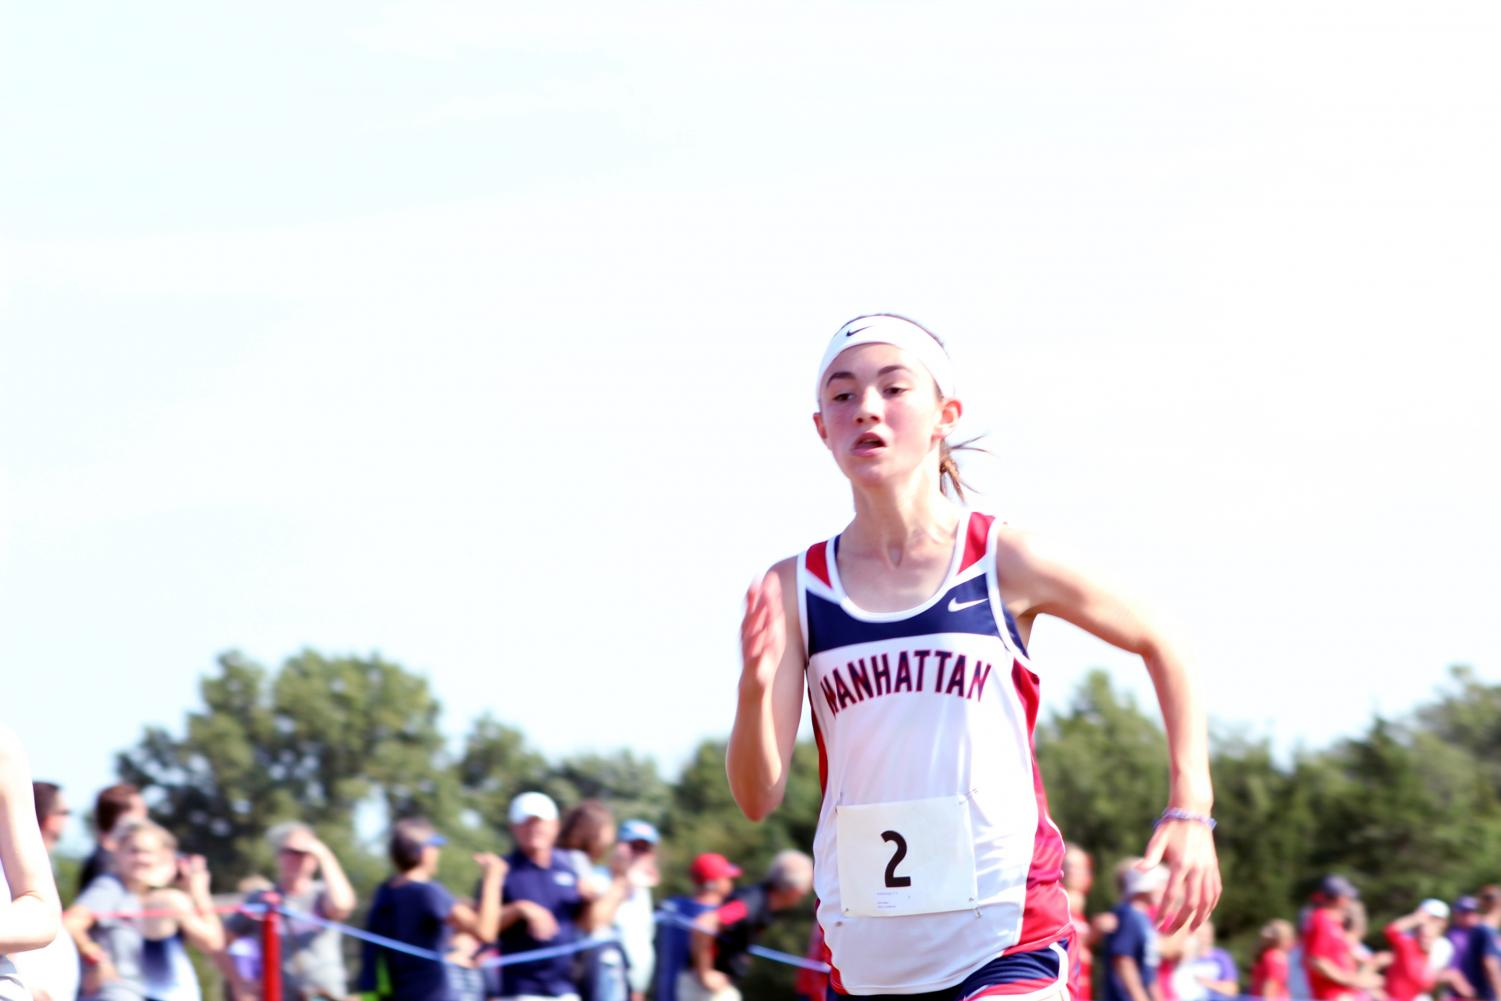 Freshman Amelia Knopp barrels toward the finish line, leading as Manhattan's second runner. Knopp placed third with a time of 20:43.9, having ran a 5K at the Warner Park meet on September 7.